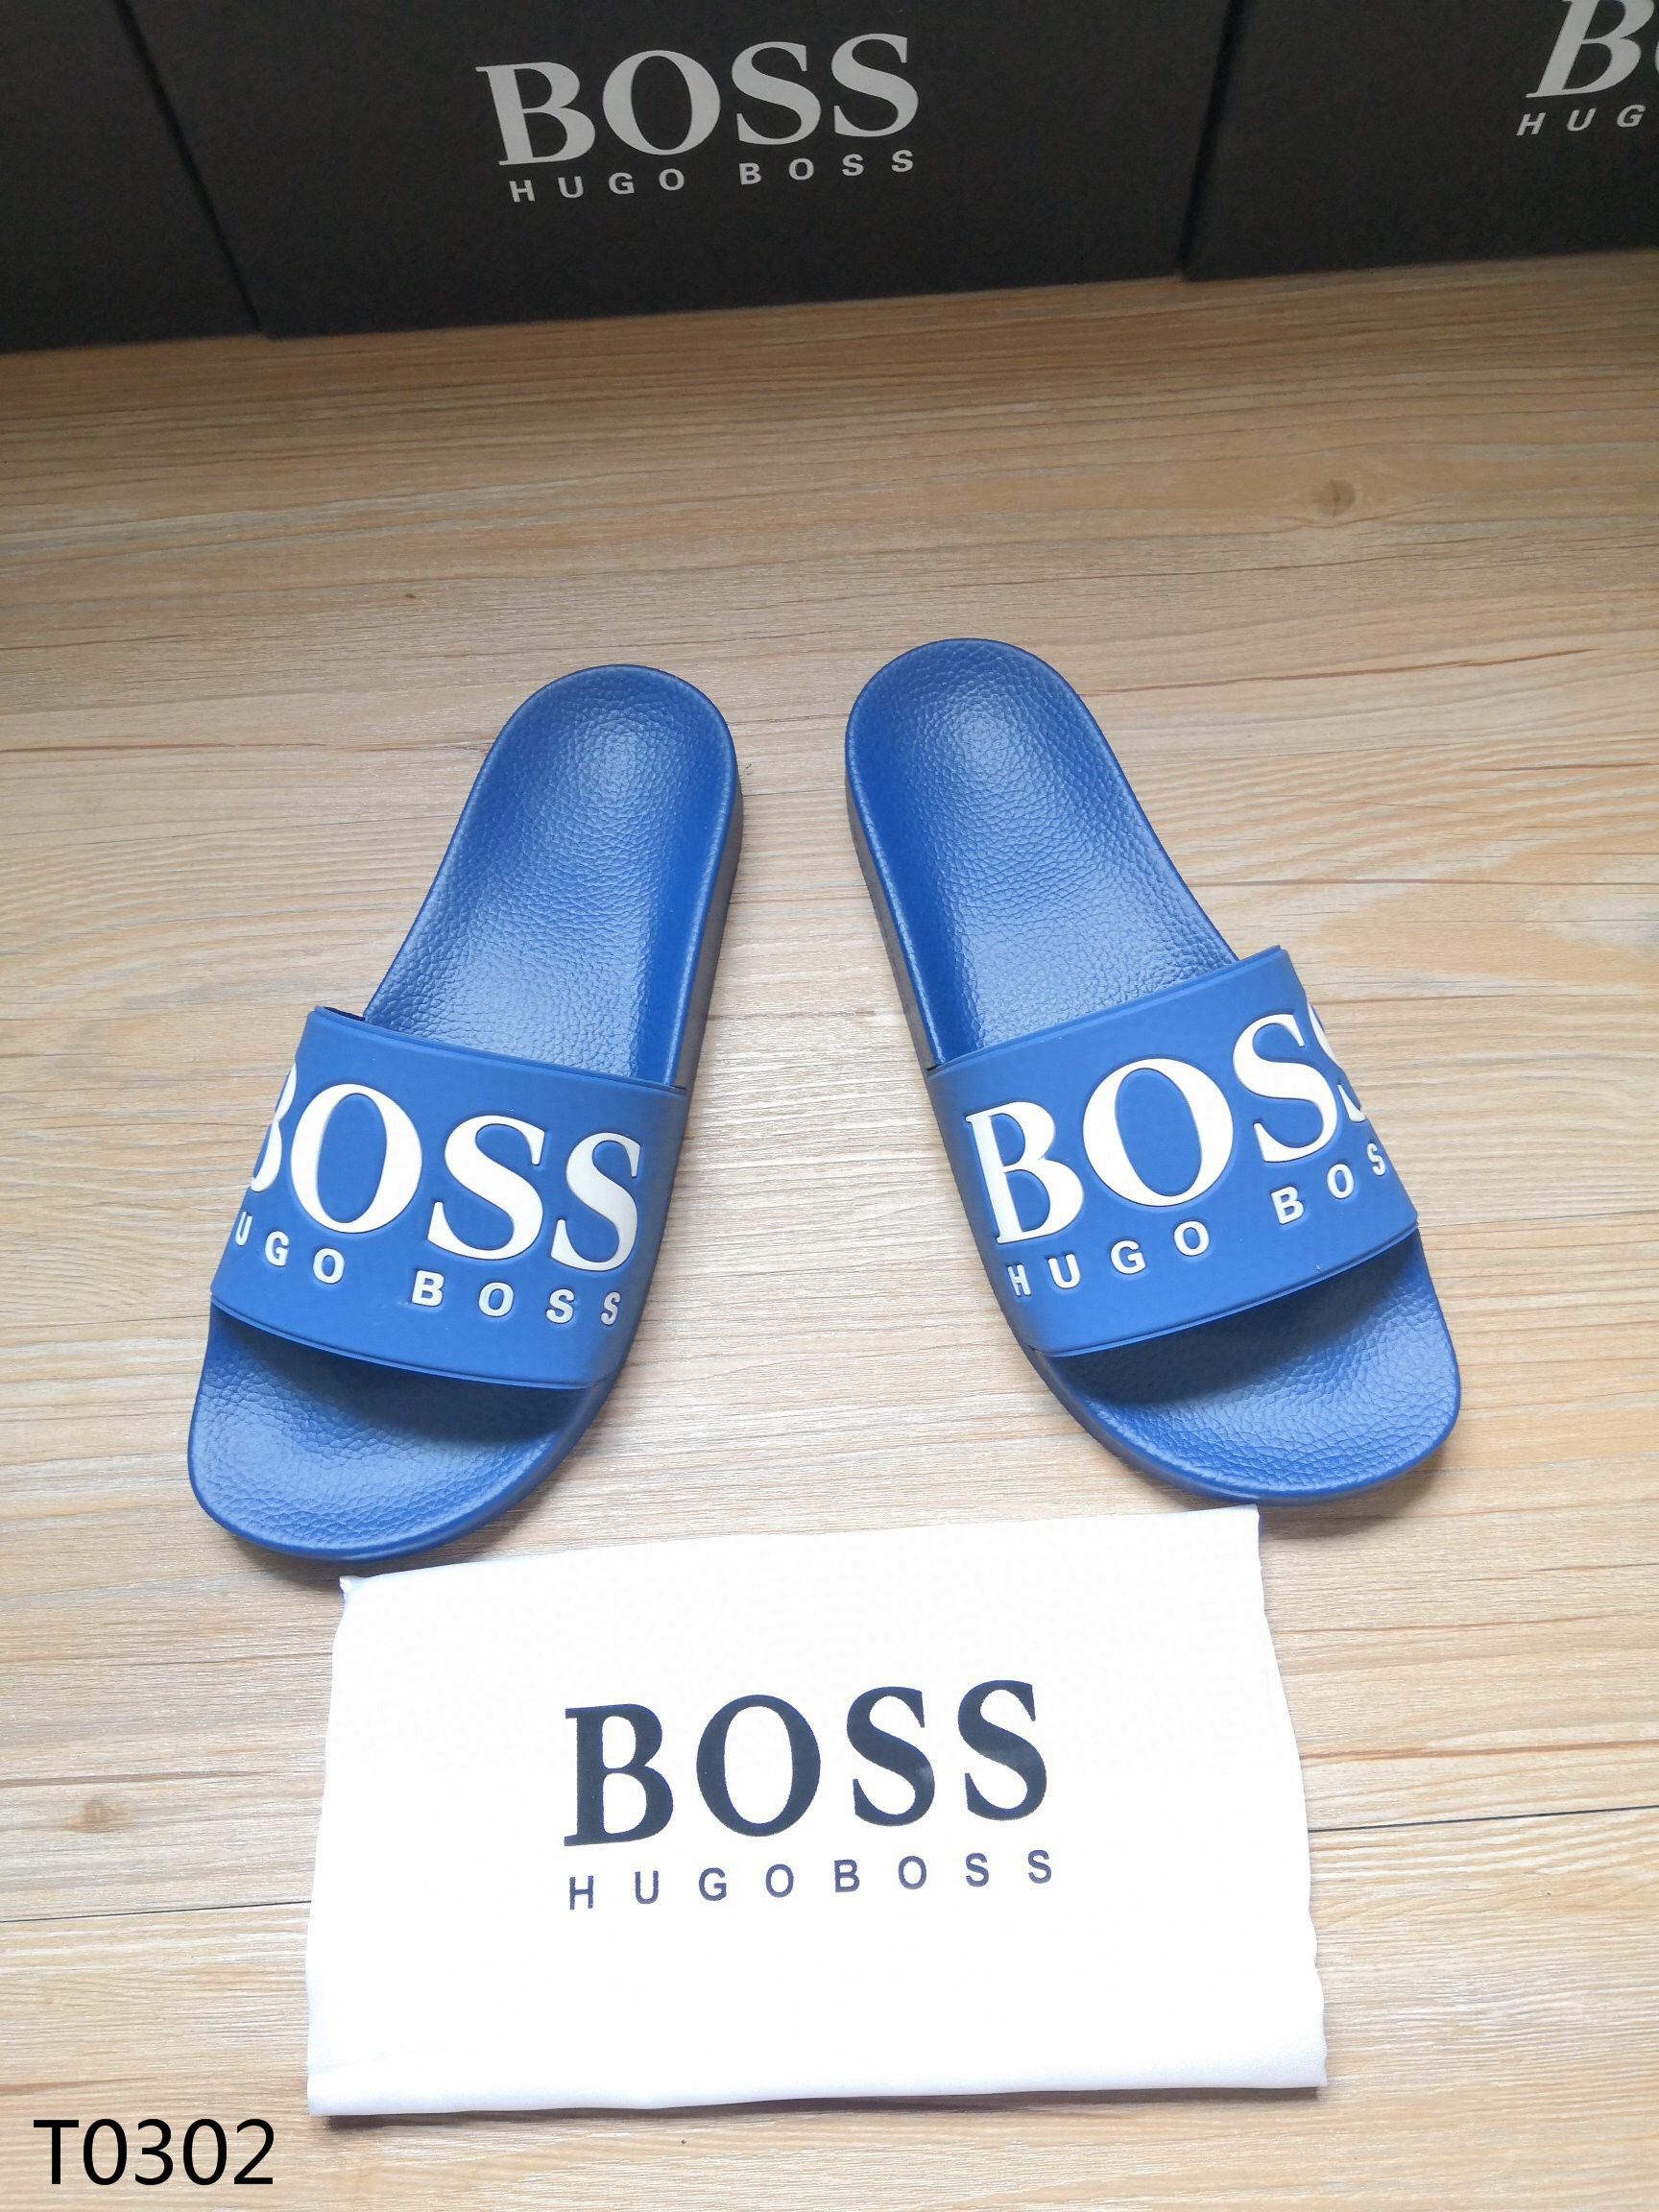 Hugo Boss Men's Slippers 05